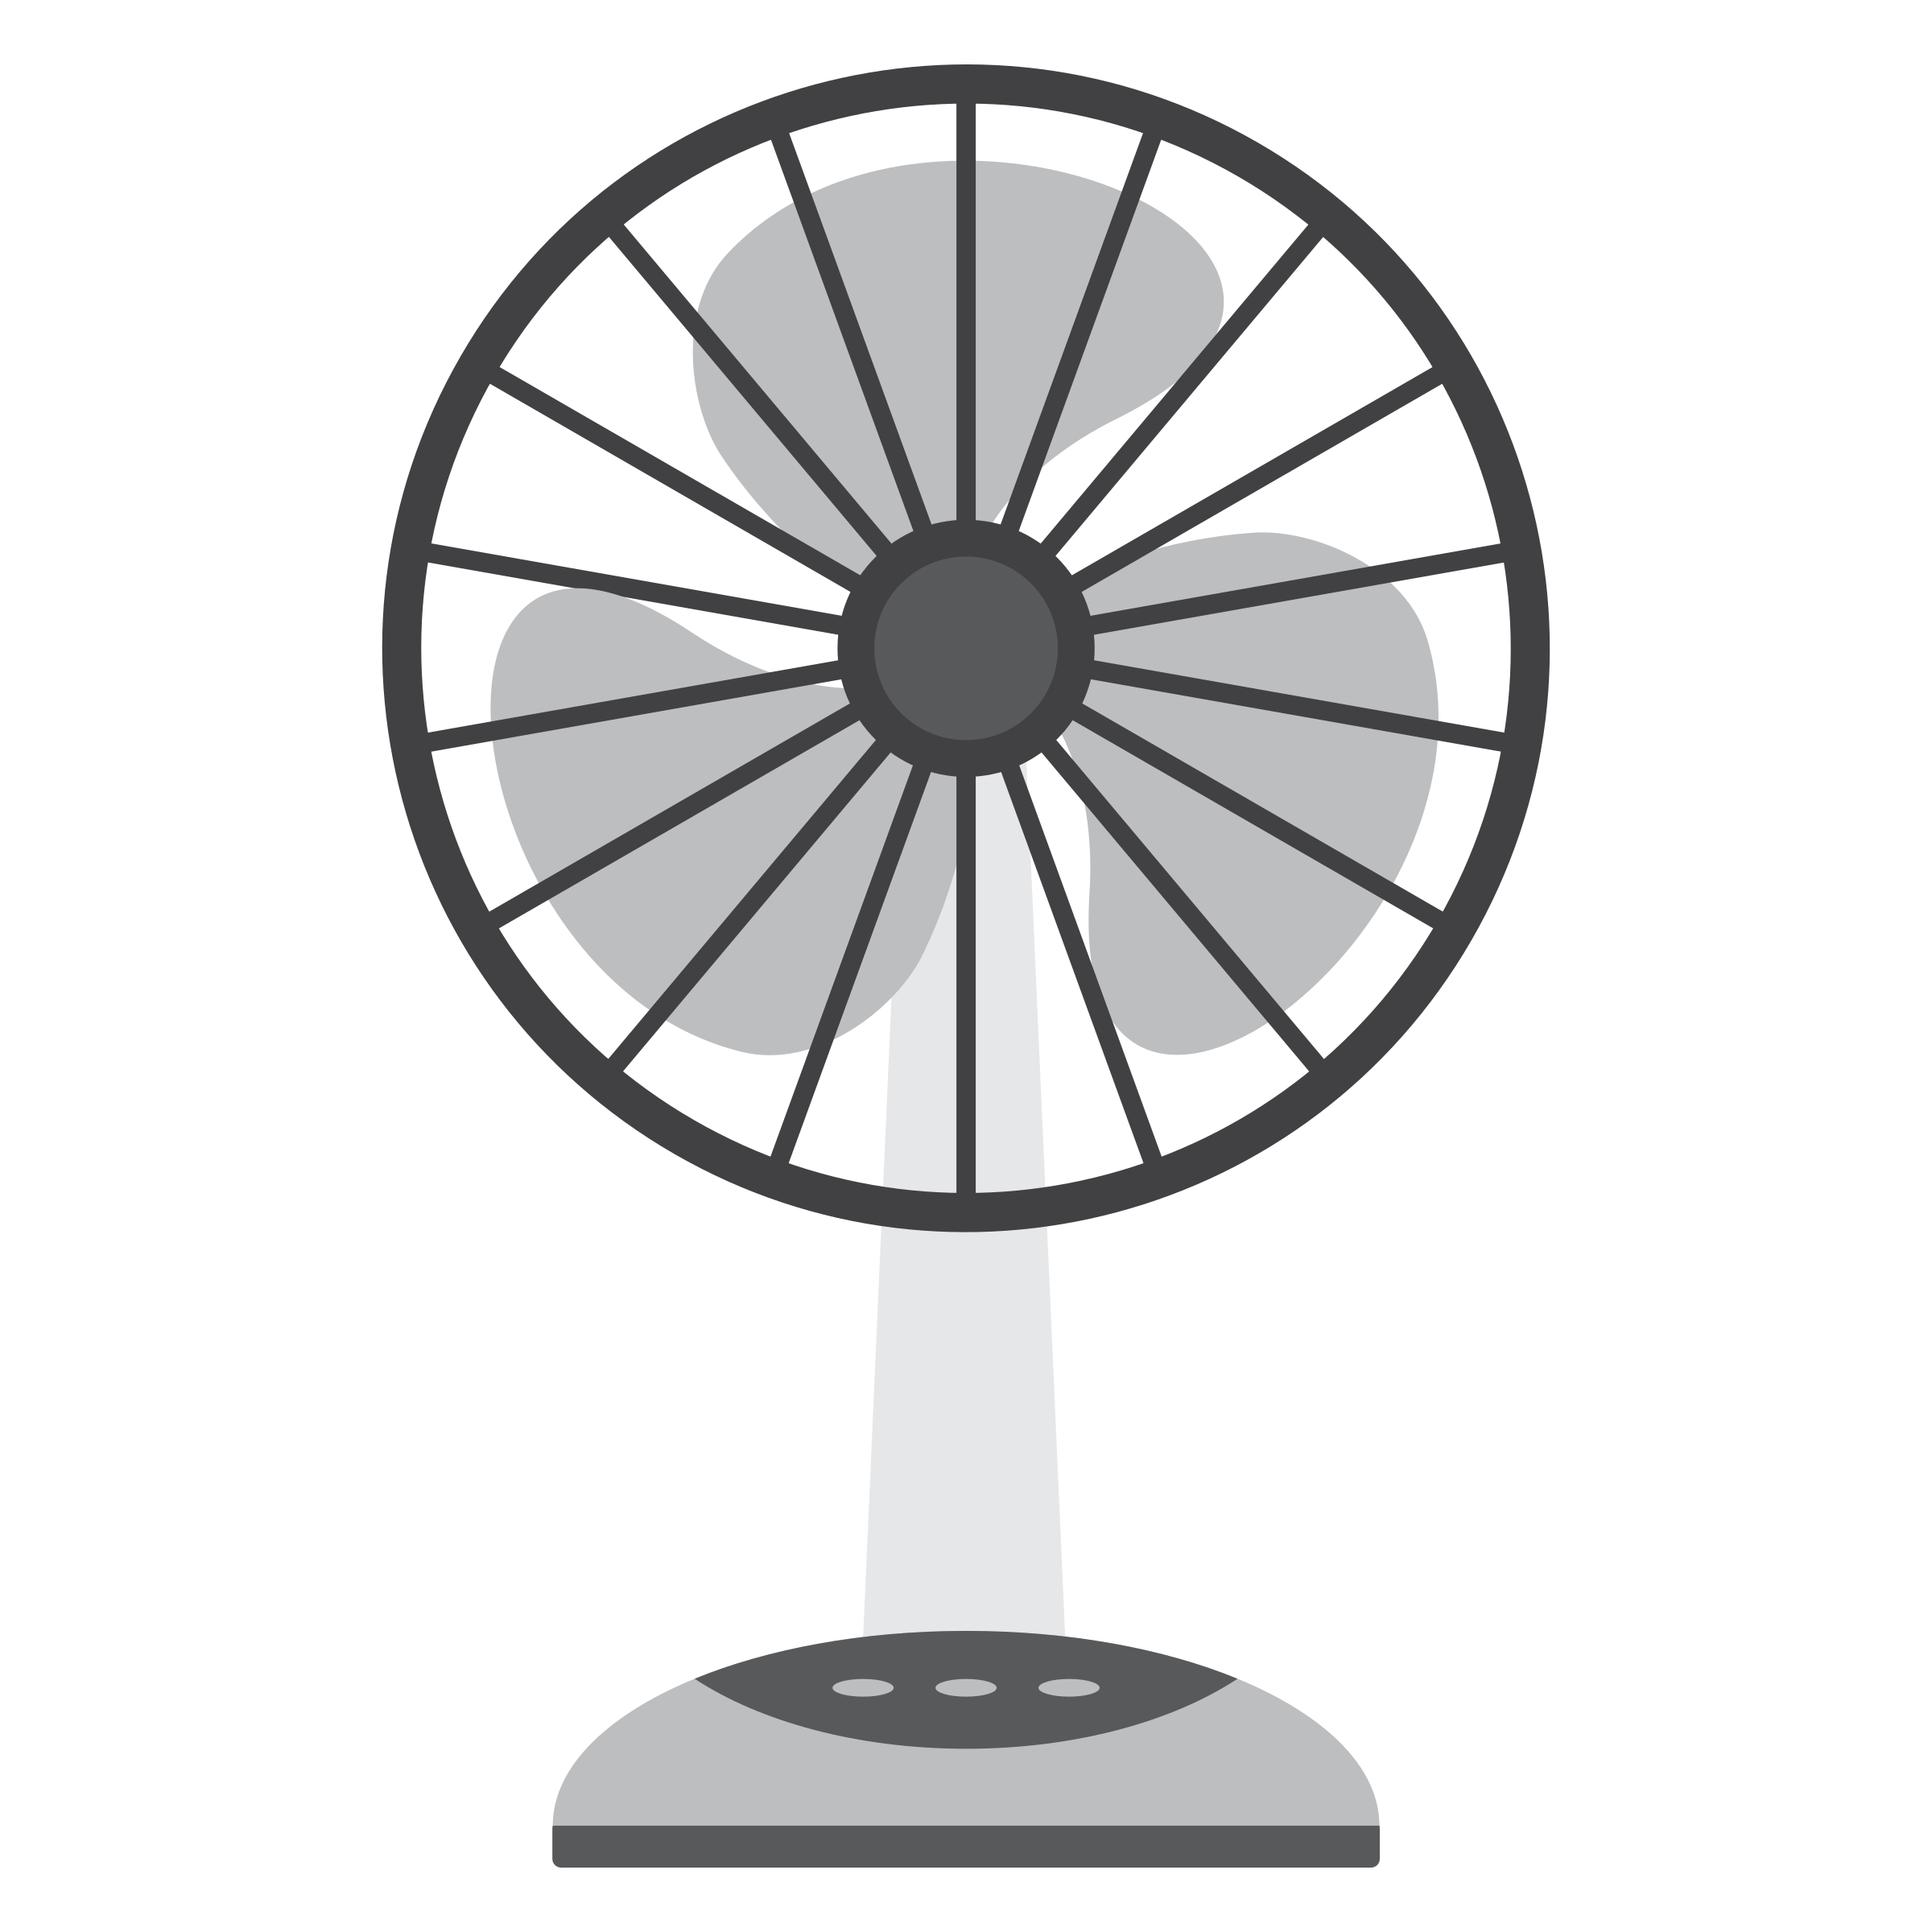 2400x2400 Free Of Electric Fan Vector Clipart